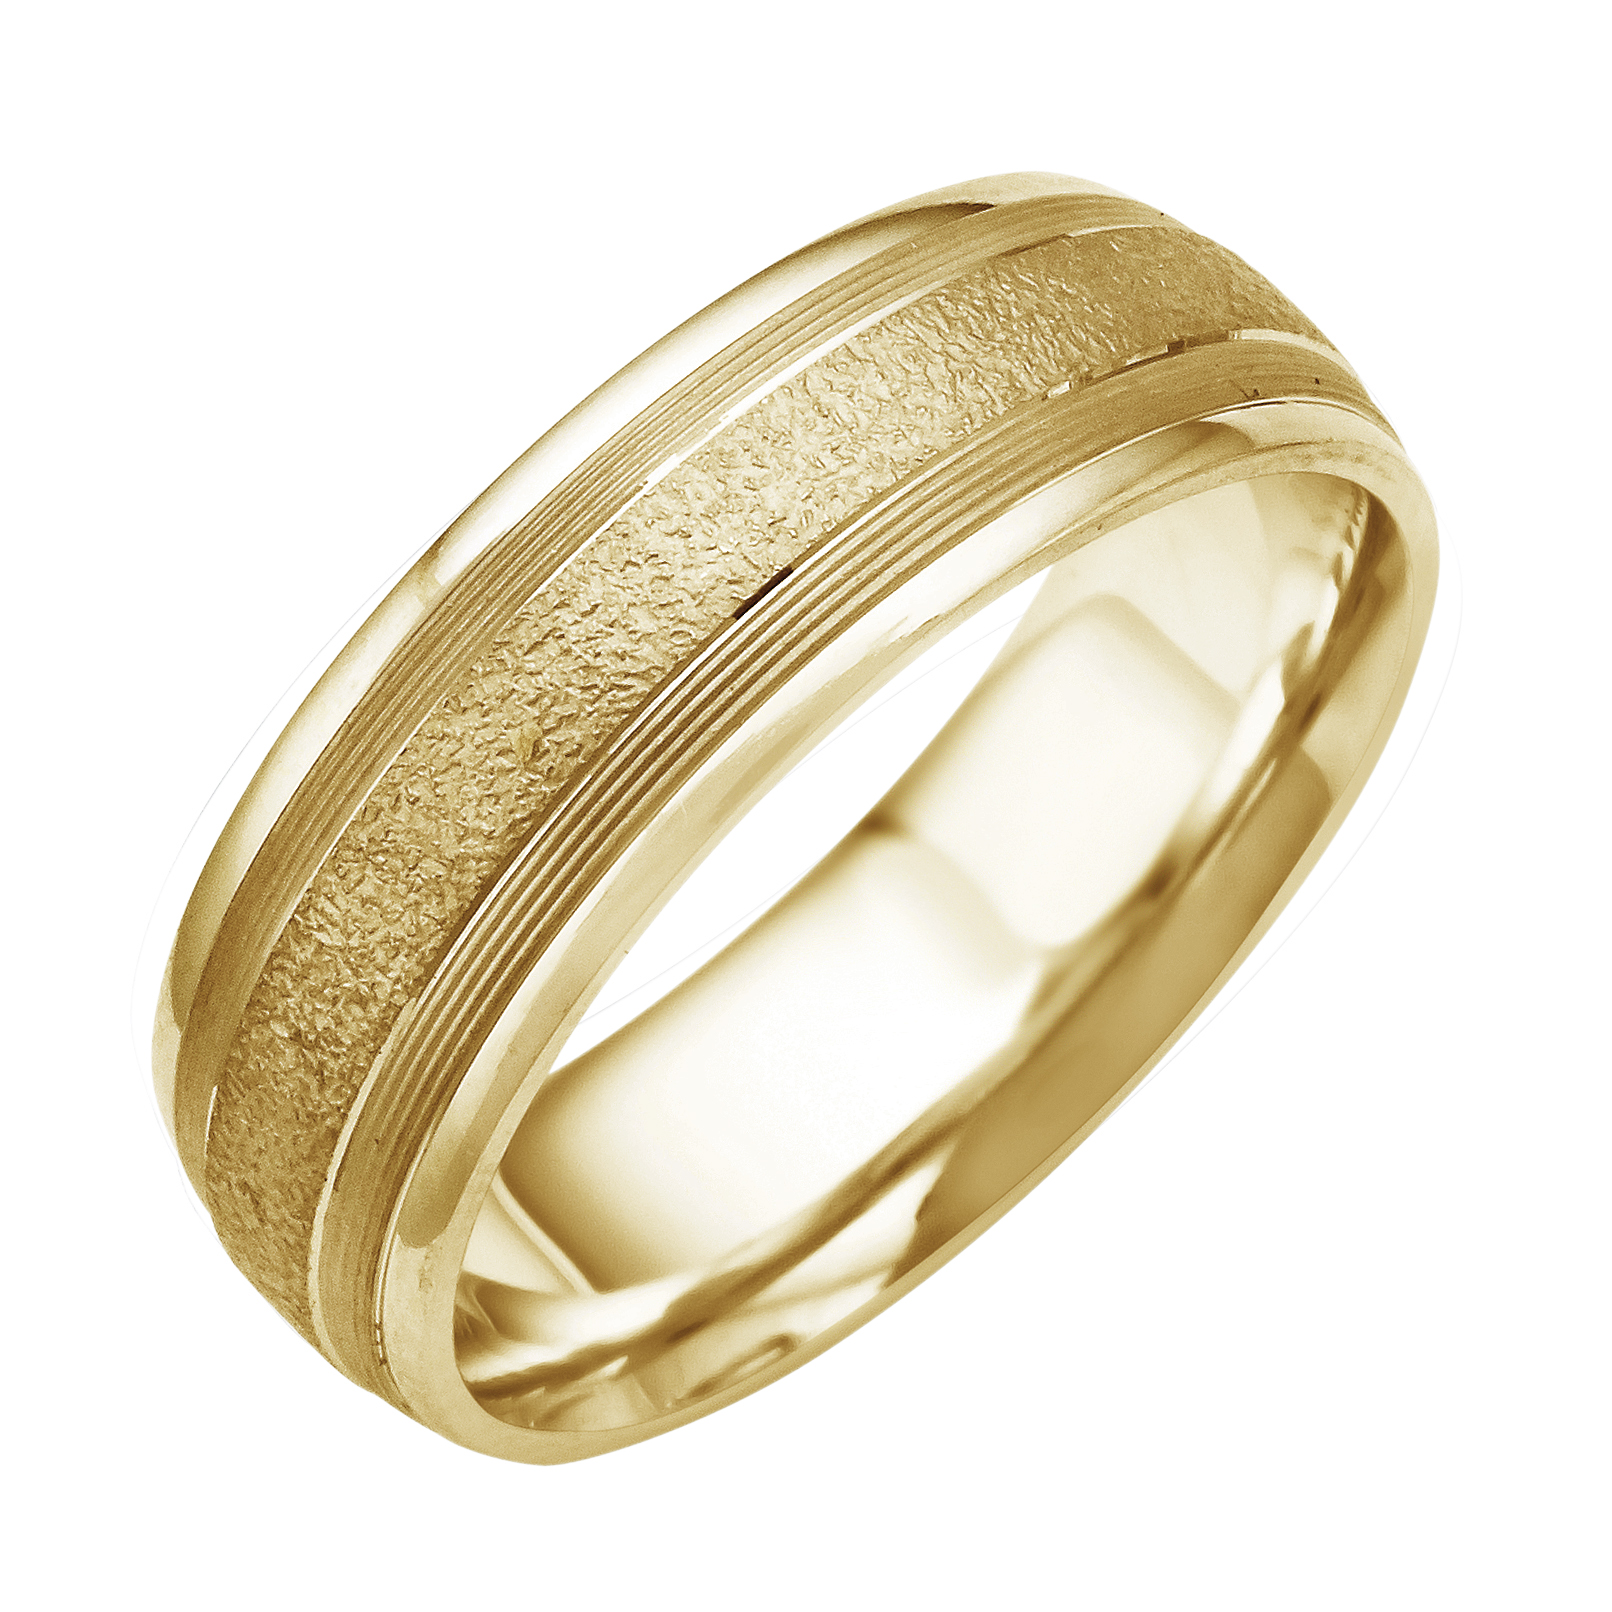 14k18k white or yellow gold river rock textured mens